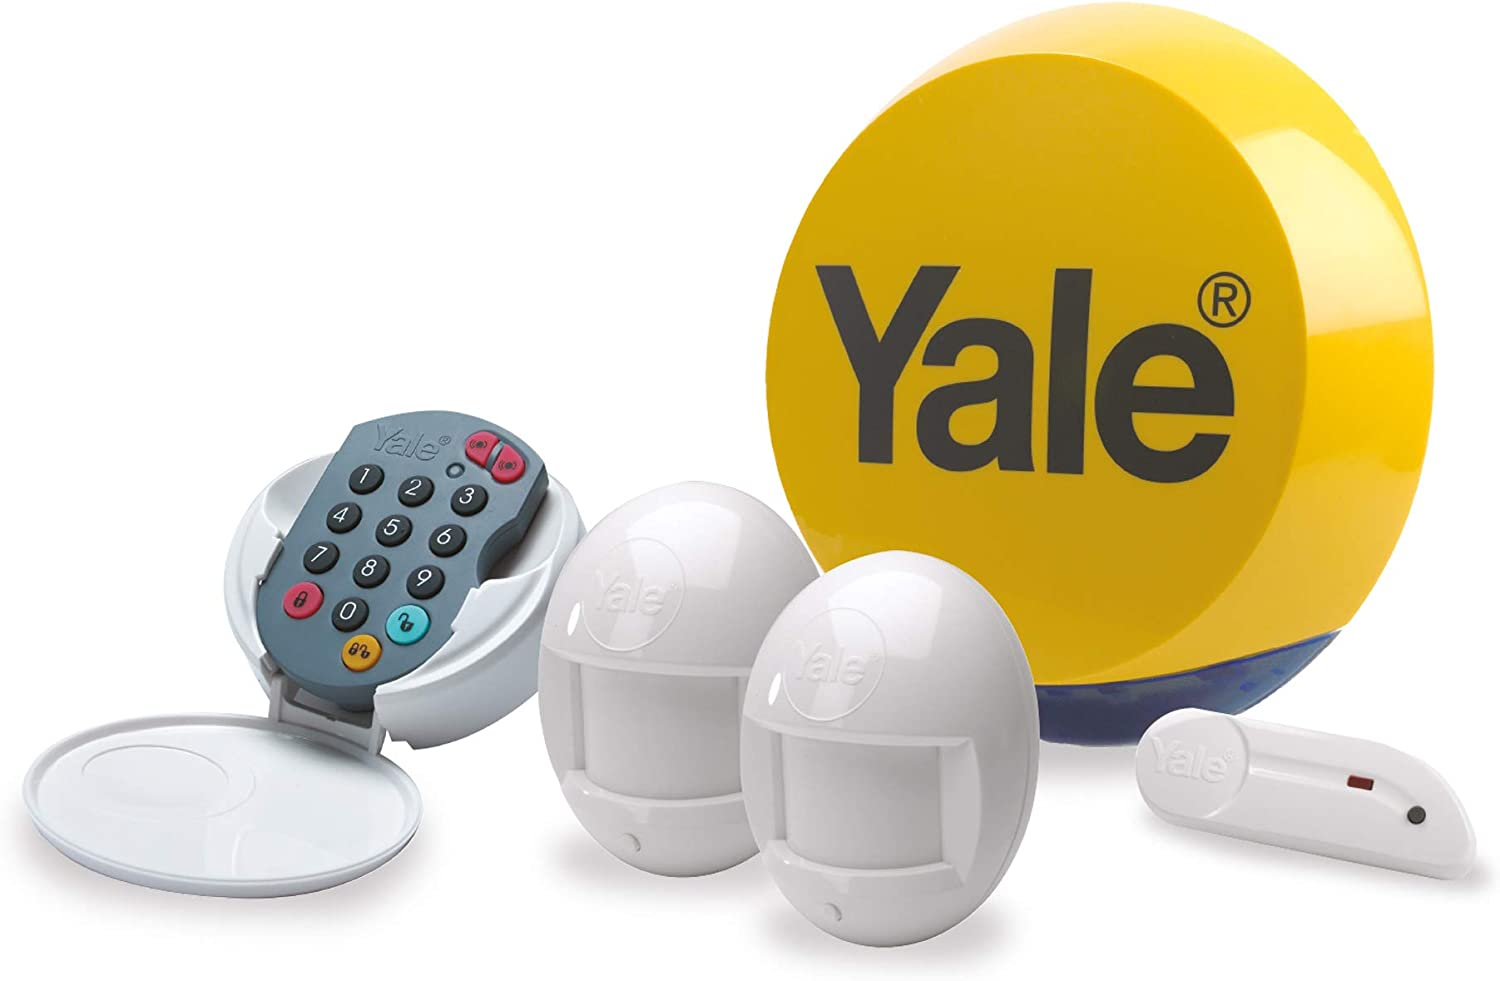 Yale YES-ALARMKIT Essentials Alarm Kit Popular products Max 75% OFF up Battery 2 Powered to